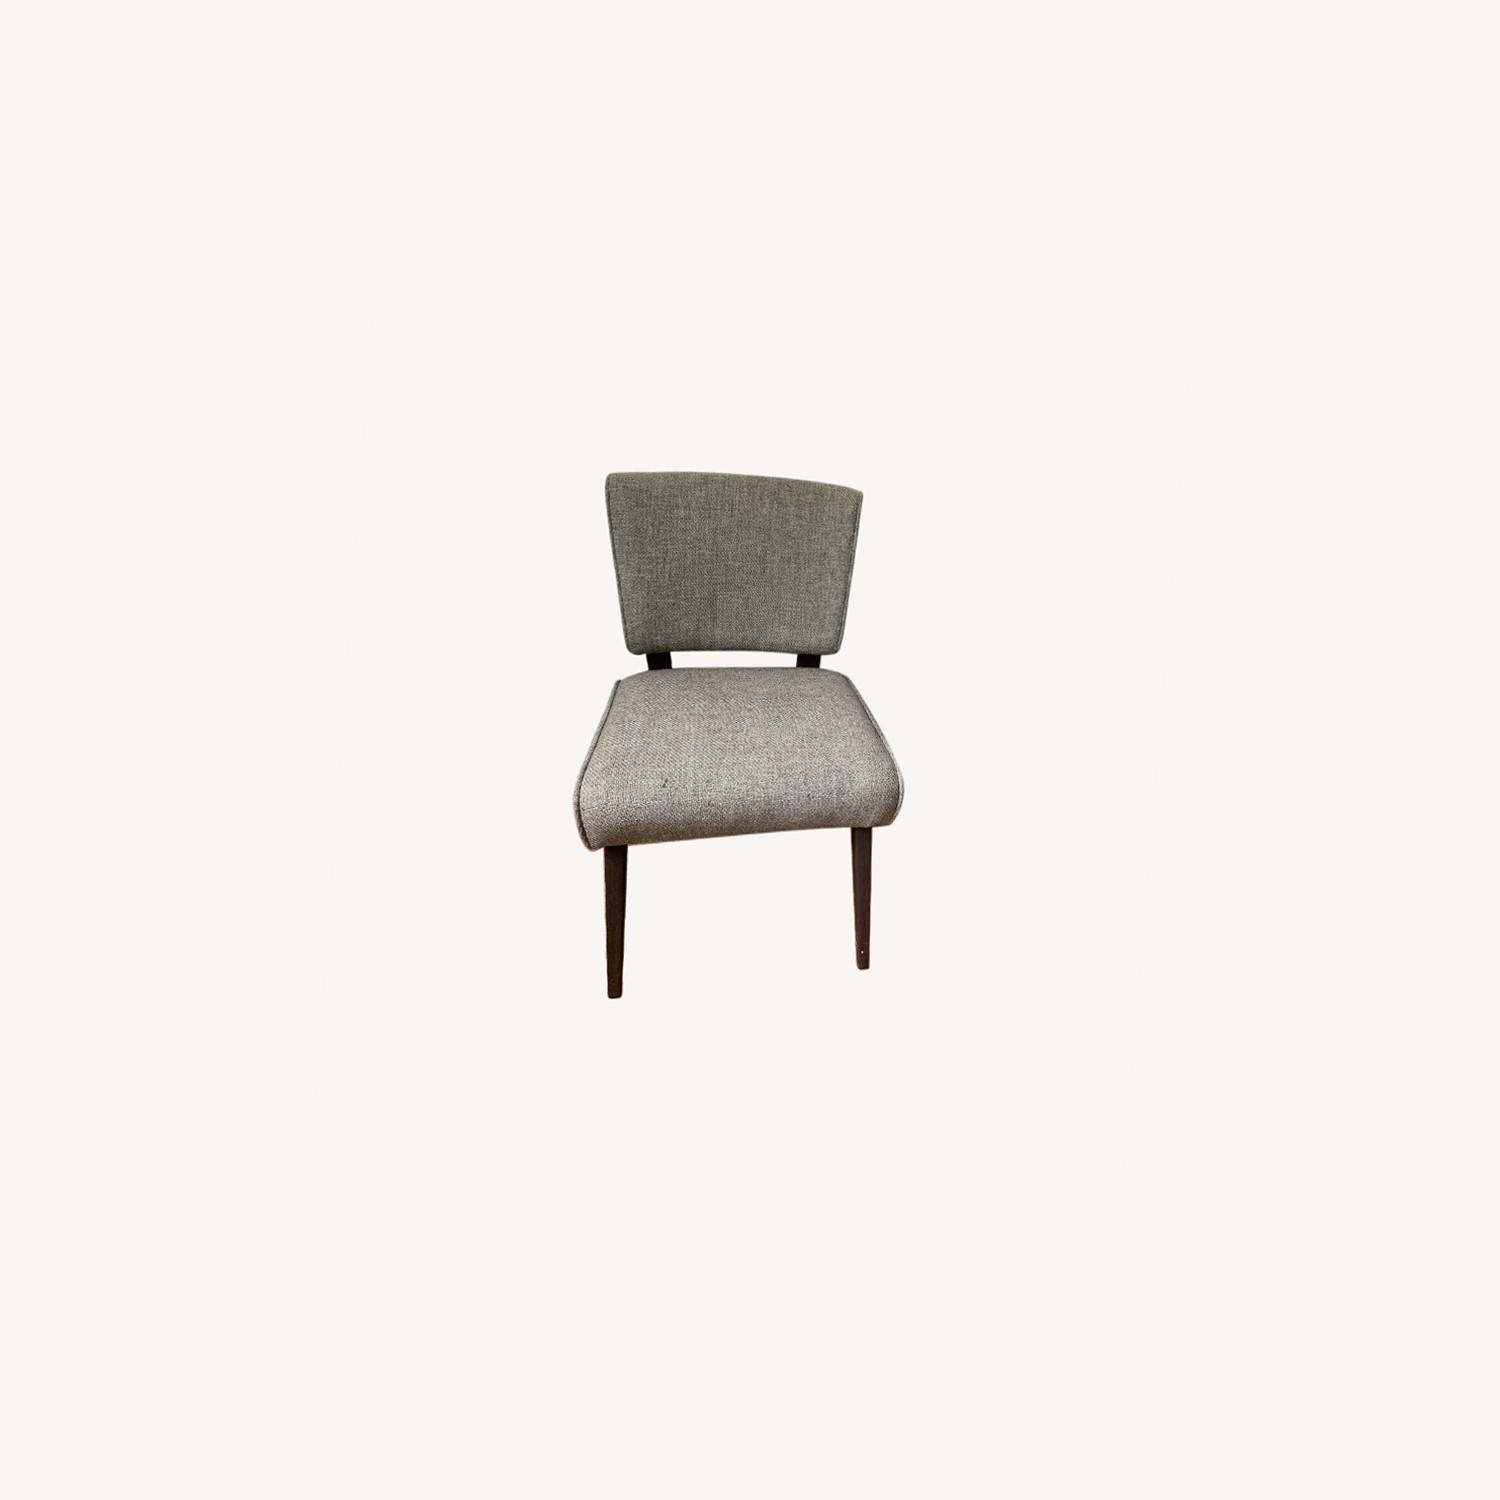 Vintage Mid Century Accent Chairs - image-0